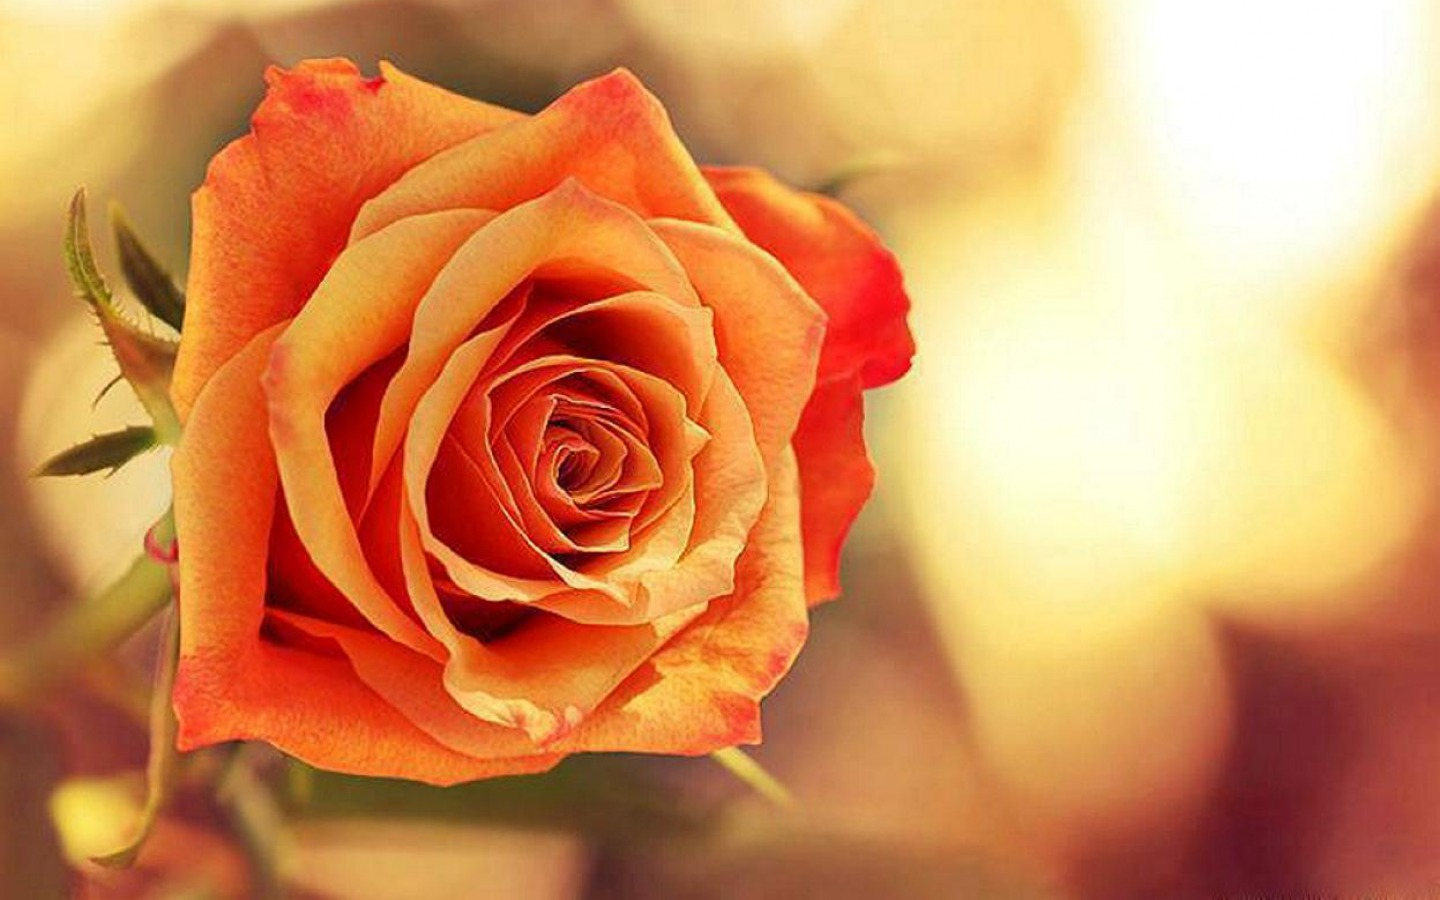 Flowers Images Rose Hd Wallpaper And Background Photos 33340999